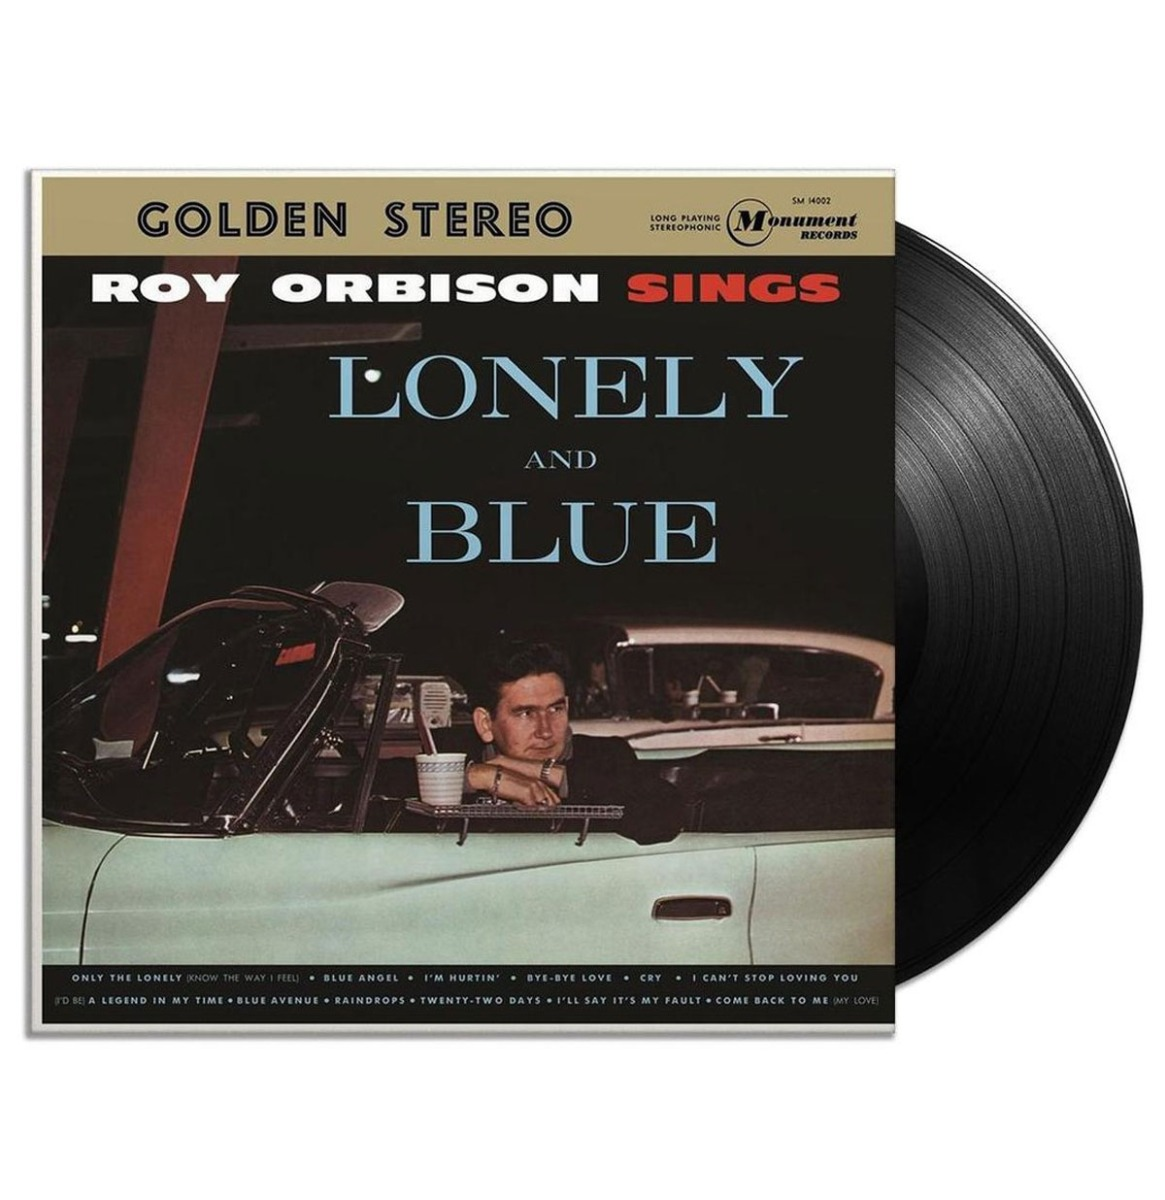 Roy Orbison - Sings Lonely And Blue LP